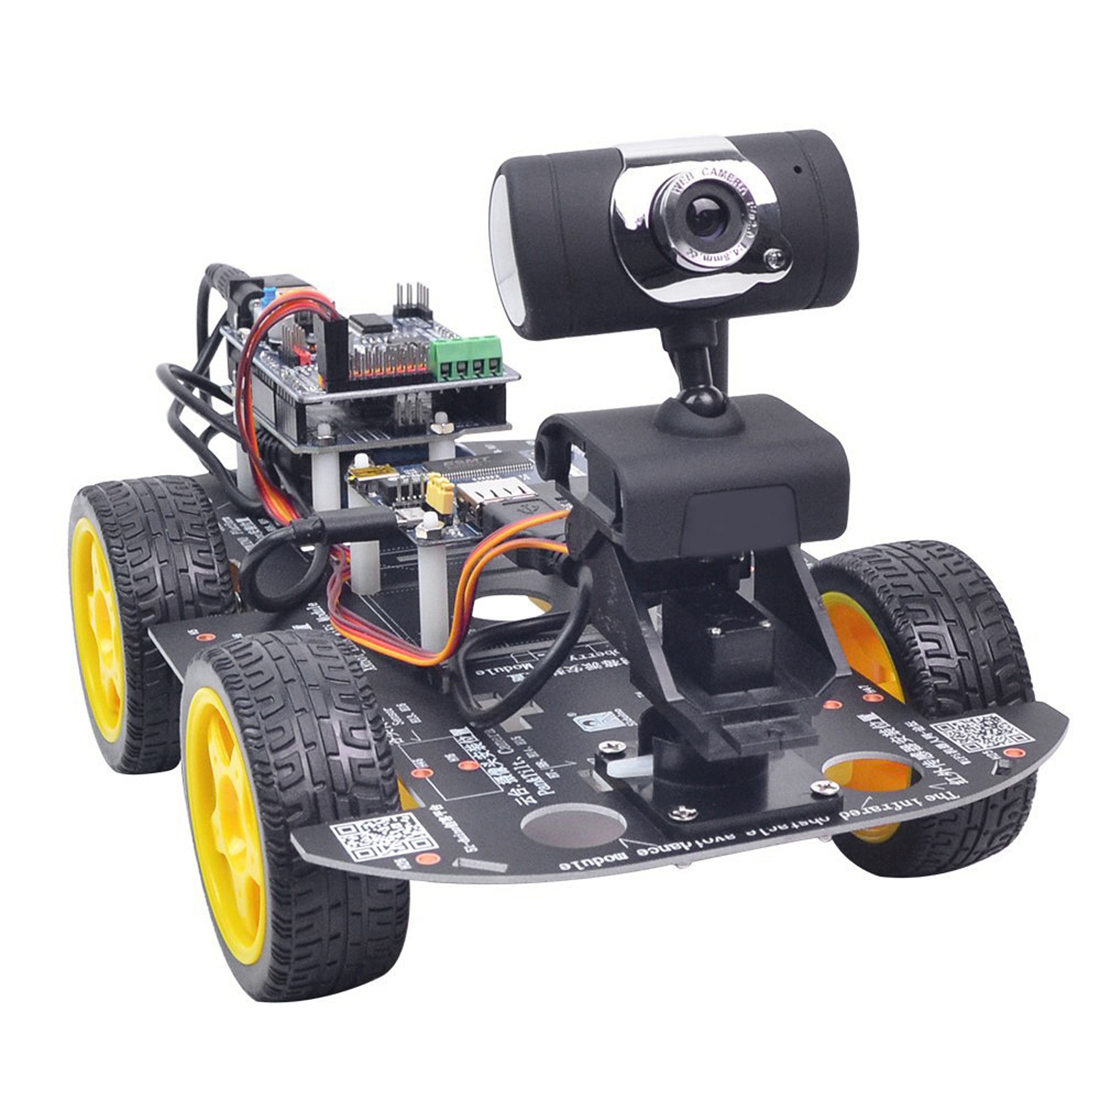 New DIY Programmable Robot Car Wifi Steam Educational Car For Raspberry Pi 4 (2G) - Standard Edition US Plug